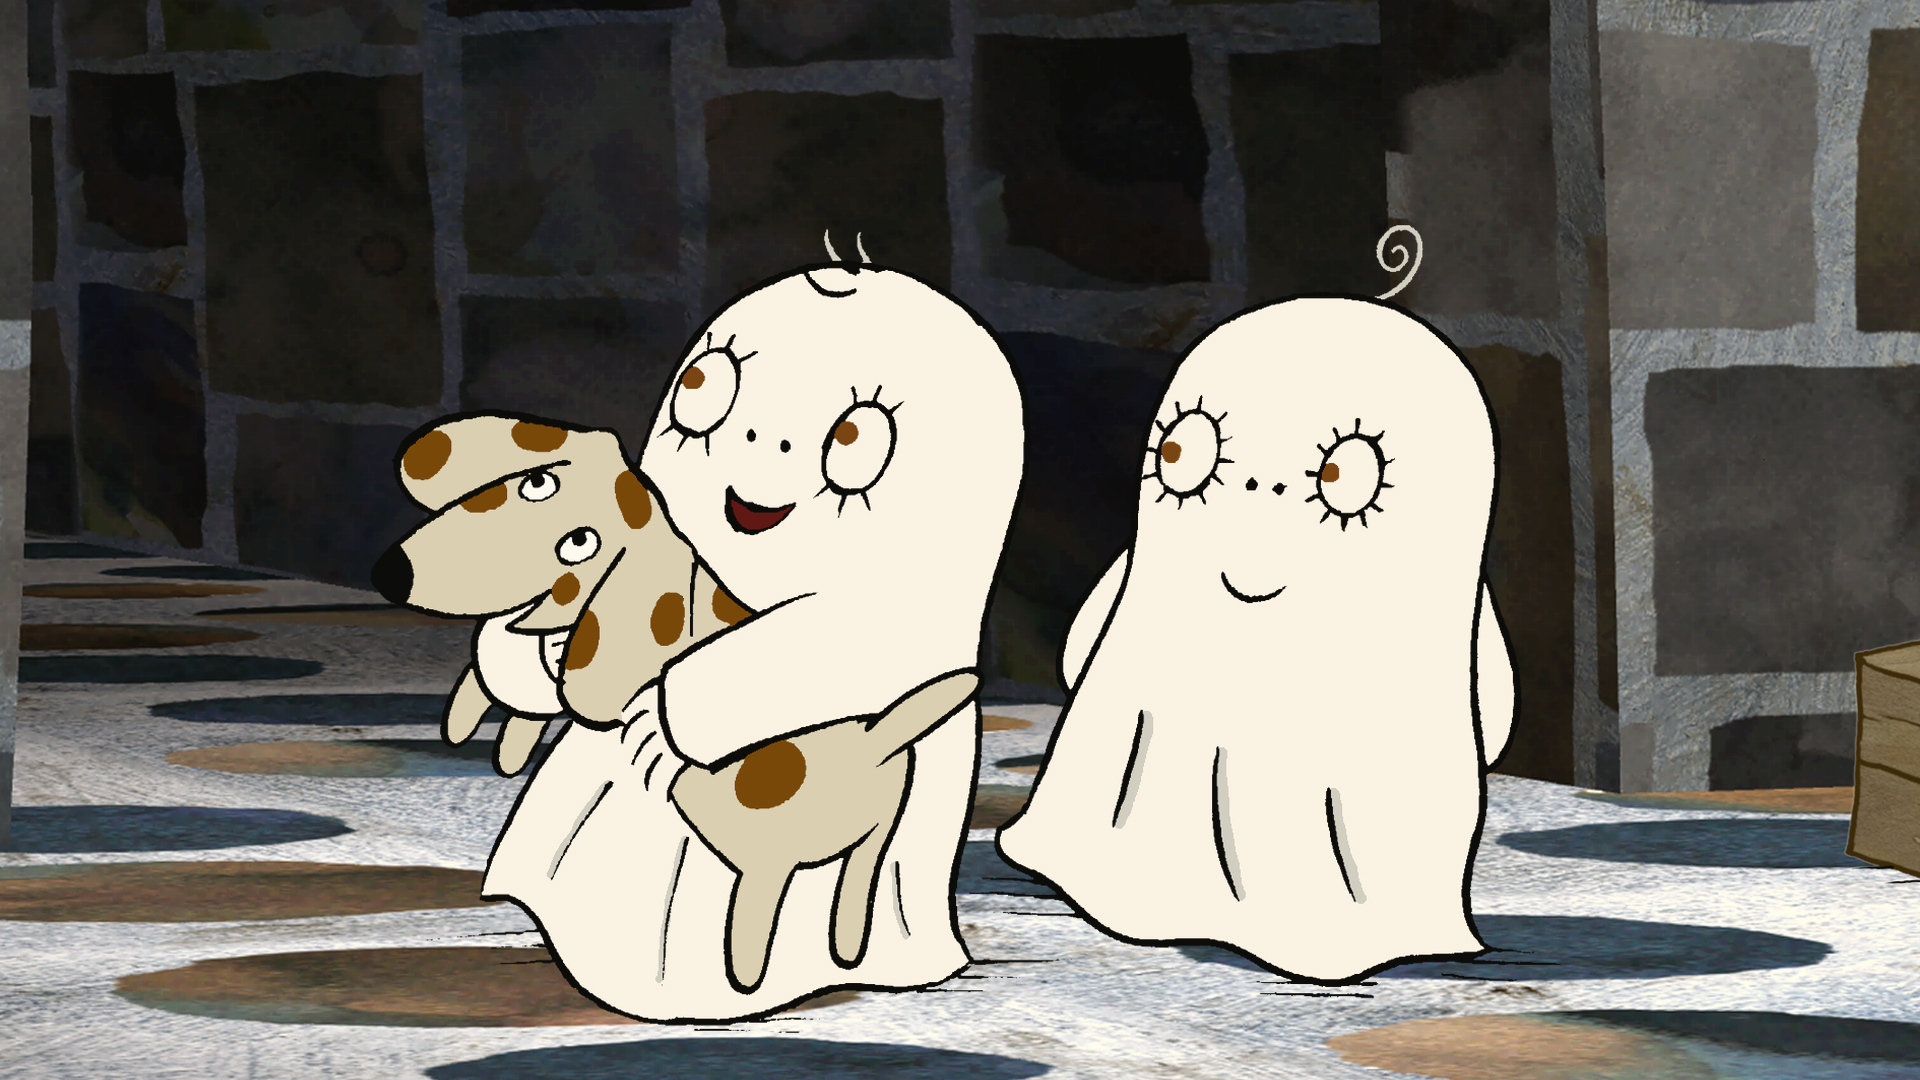 laban the little ghost � the nicest ghost around